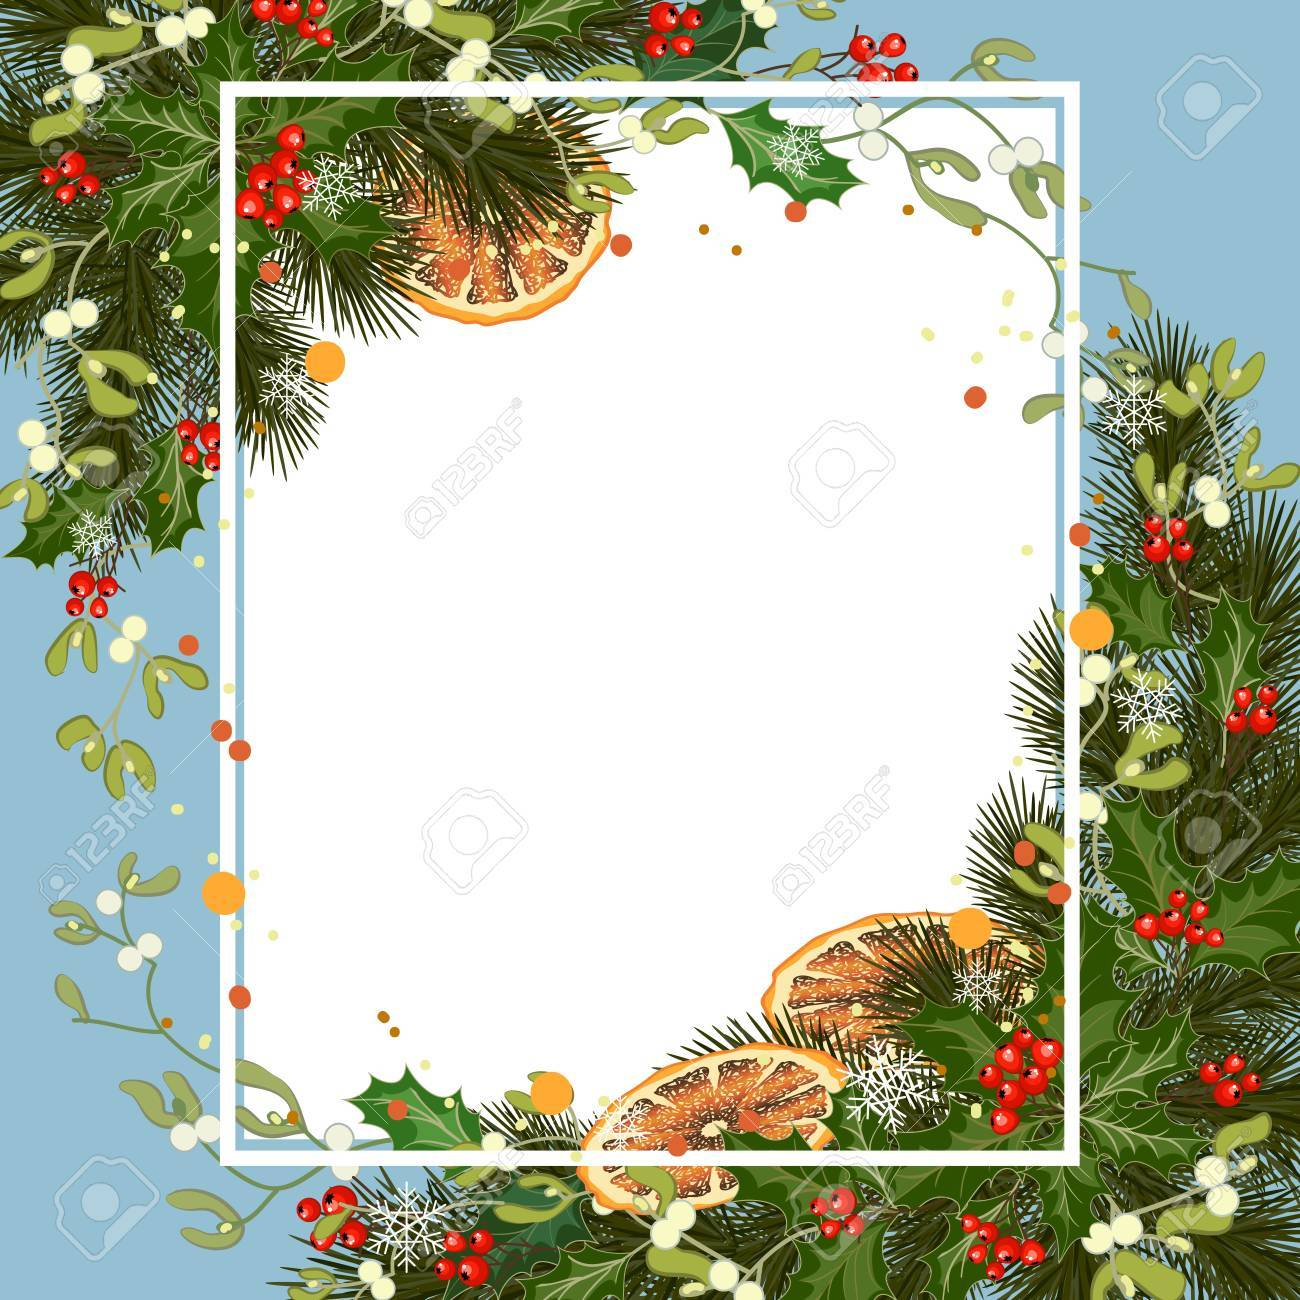 Merry Christmas Greeting Card With Traditional Decorations And ...